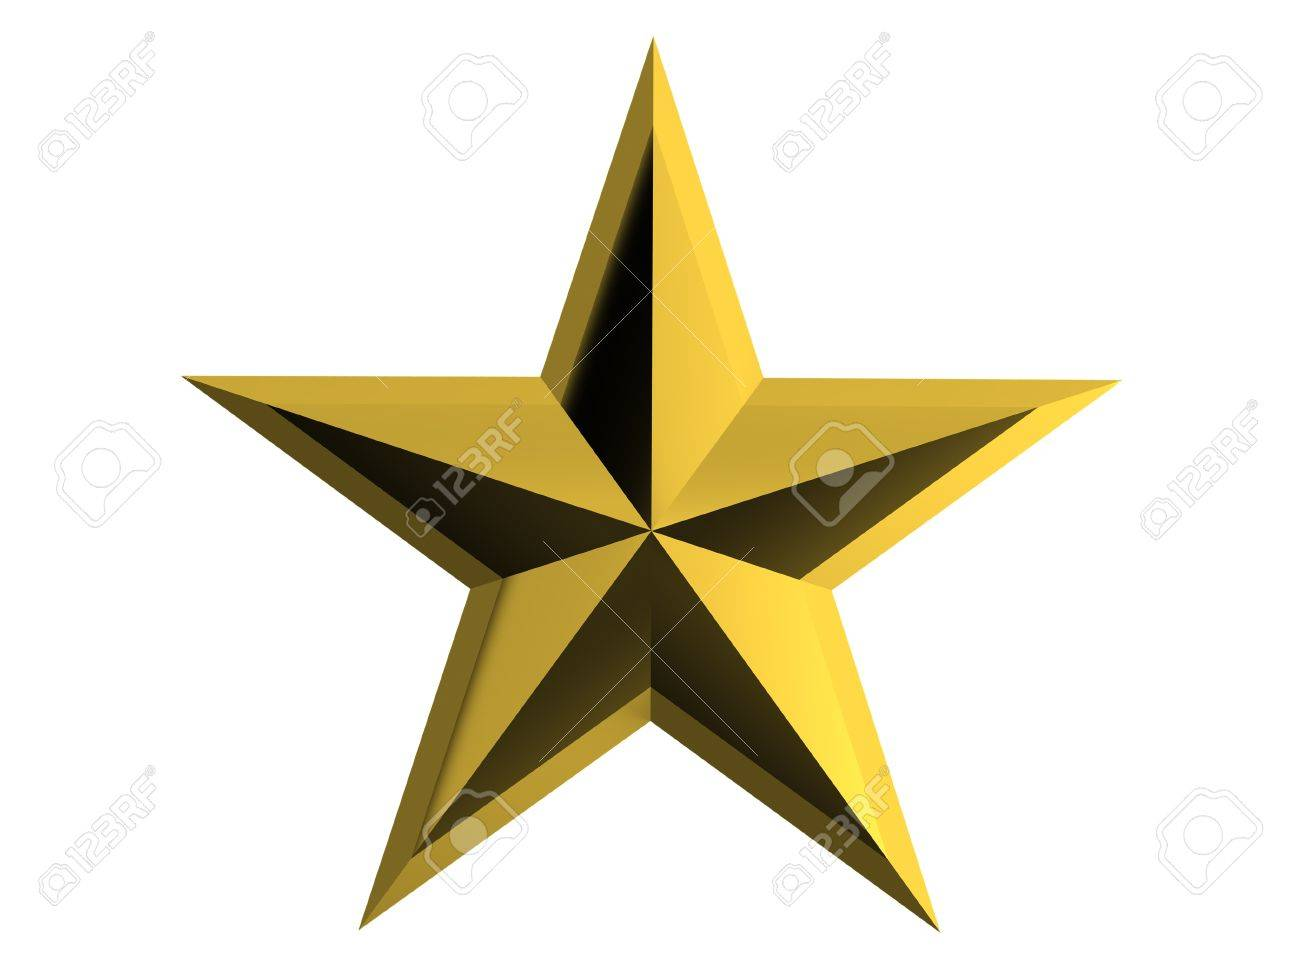 Gold star isolated over white background Stock Photo - 14821458